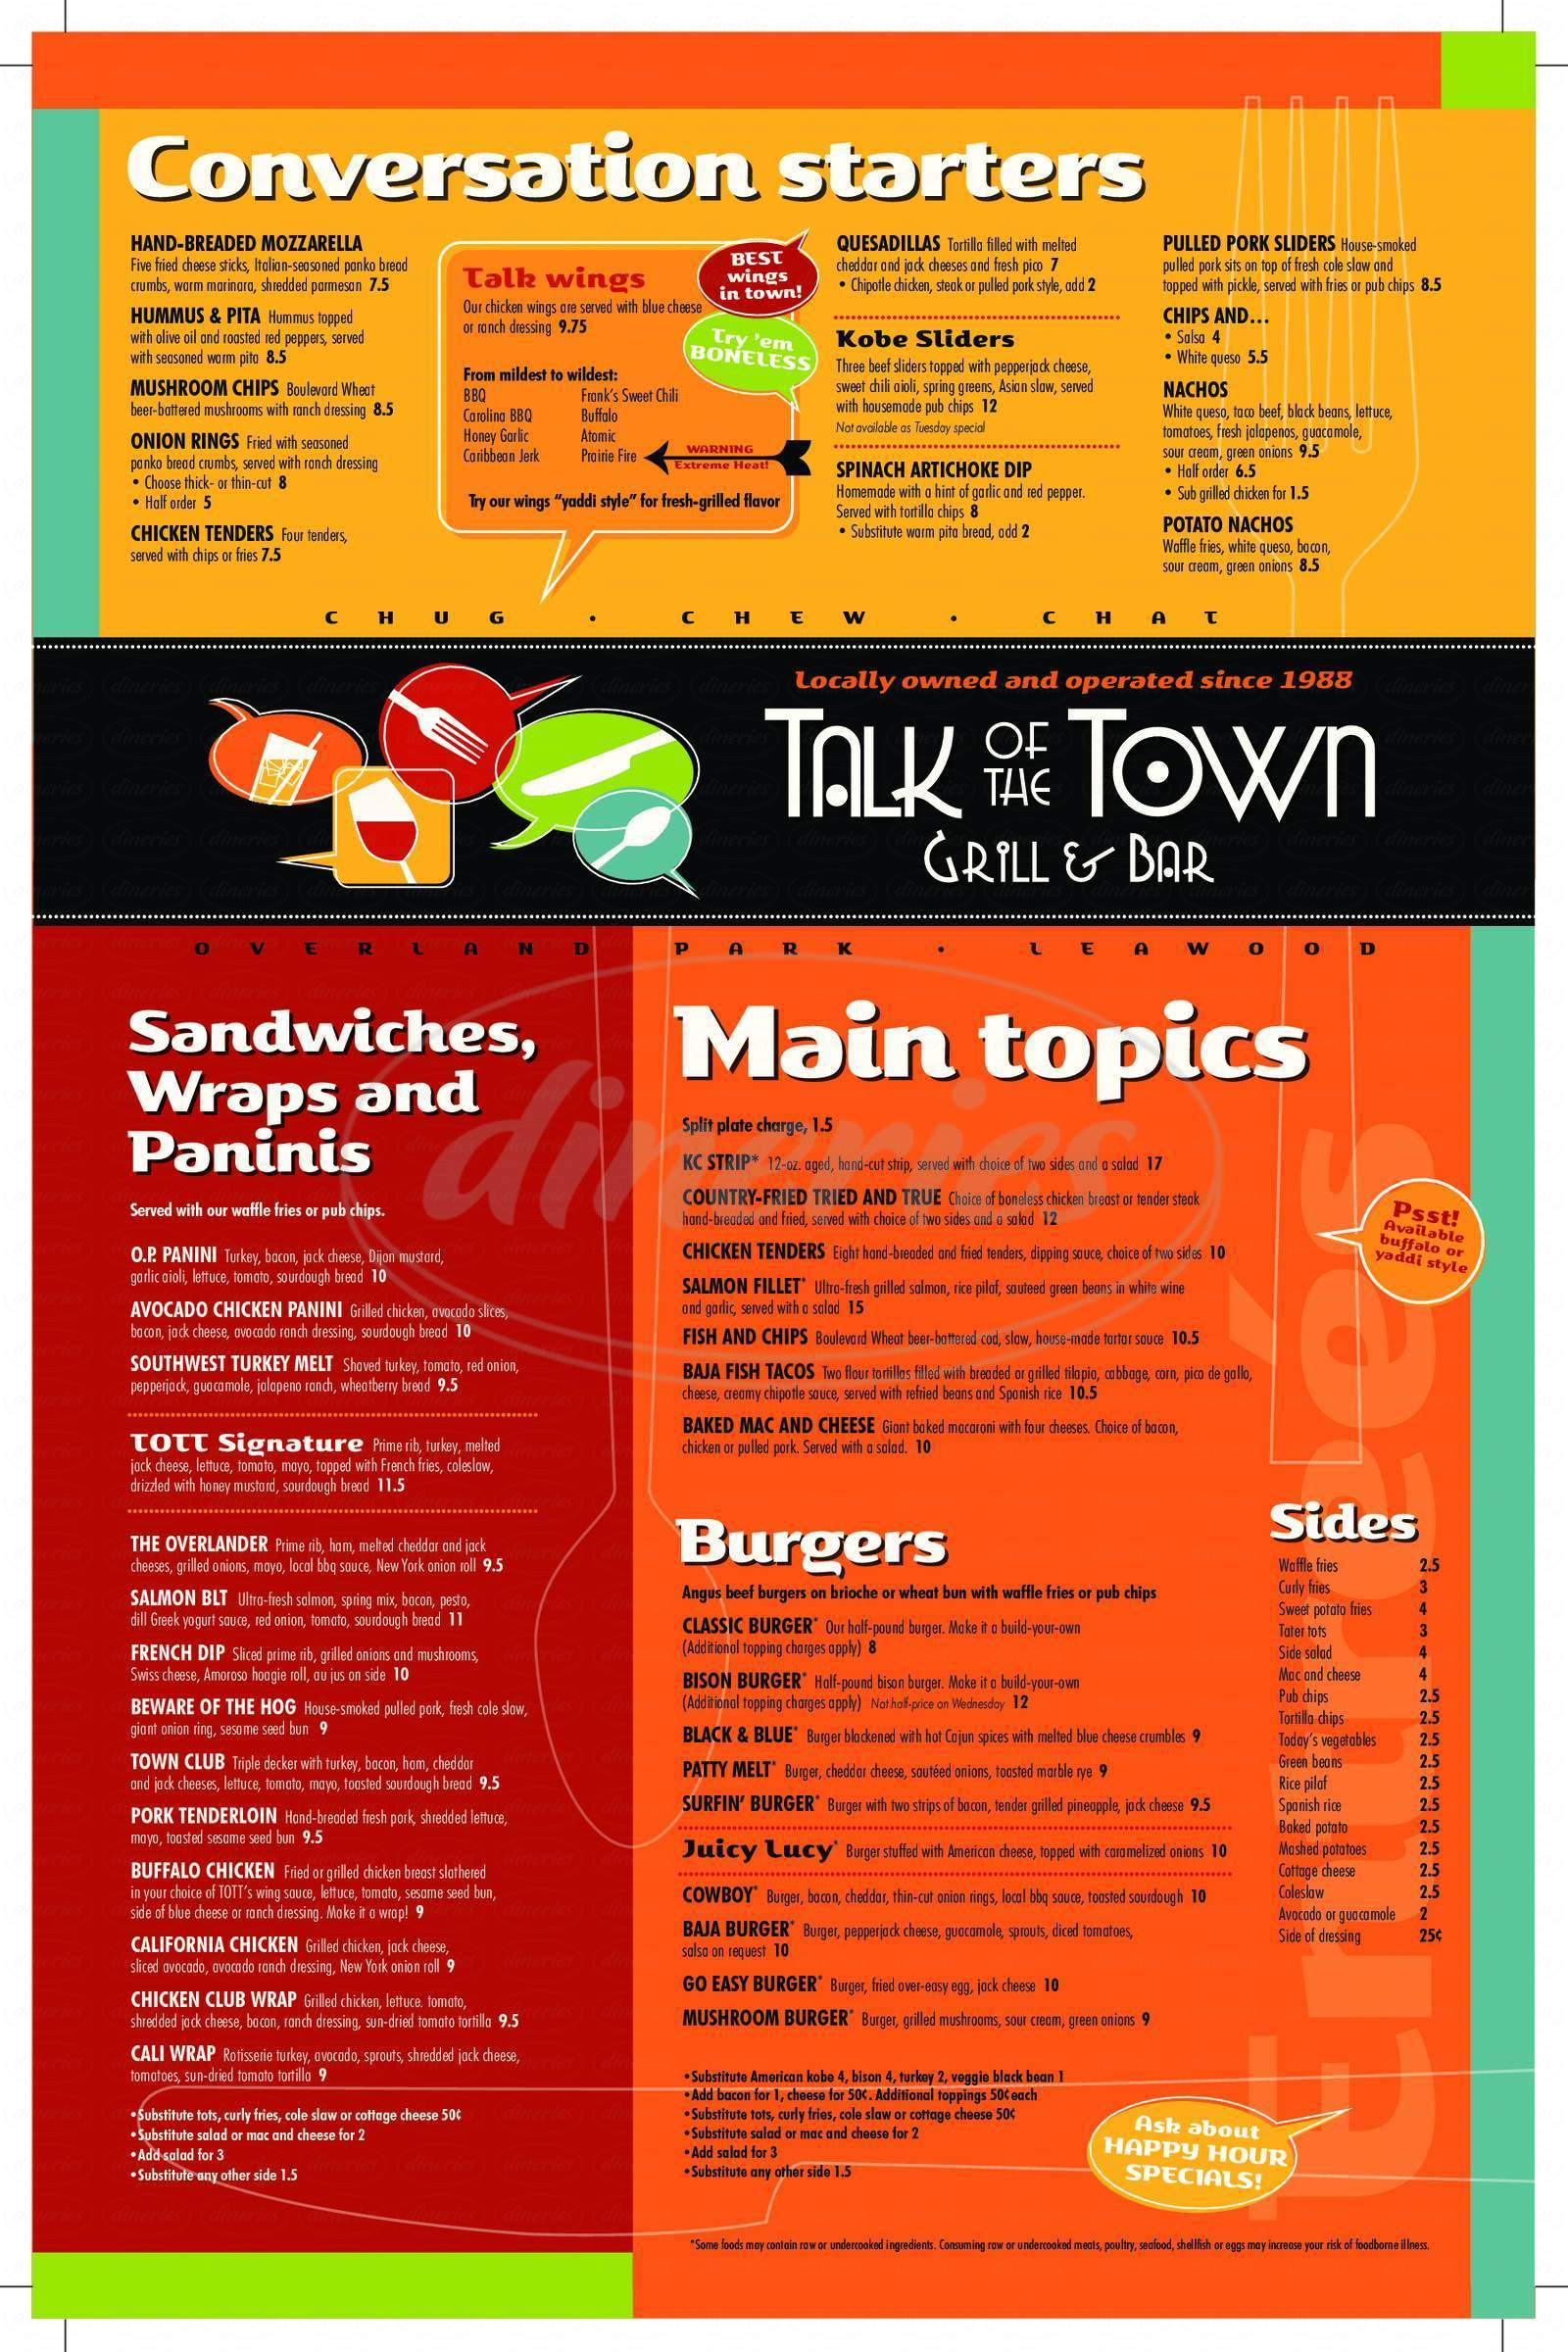 menu for Talk of the Town Grill & Bar